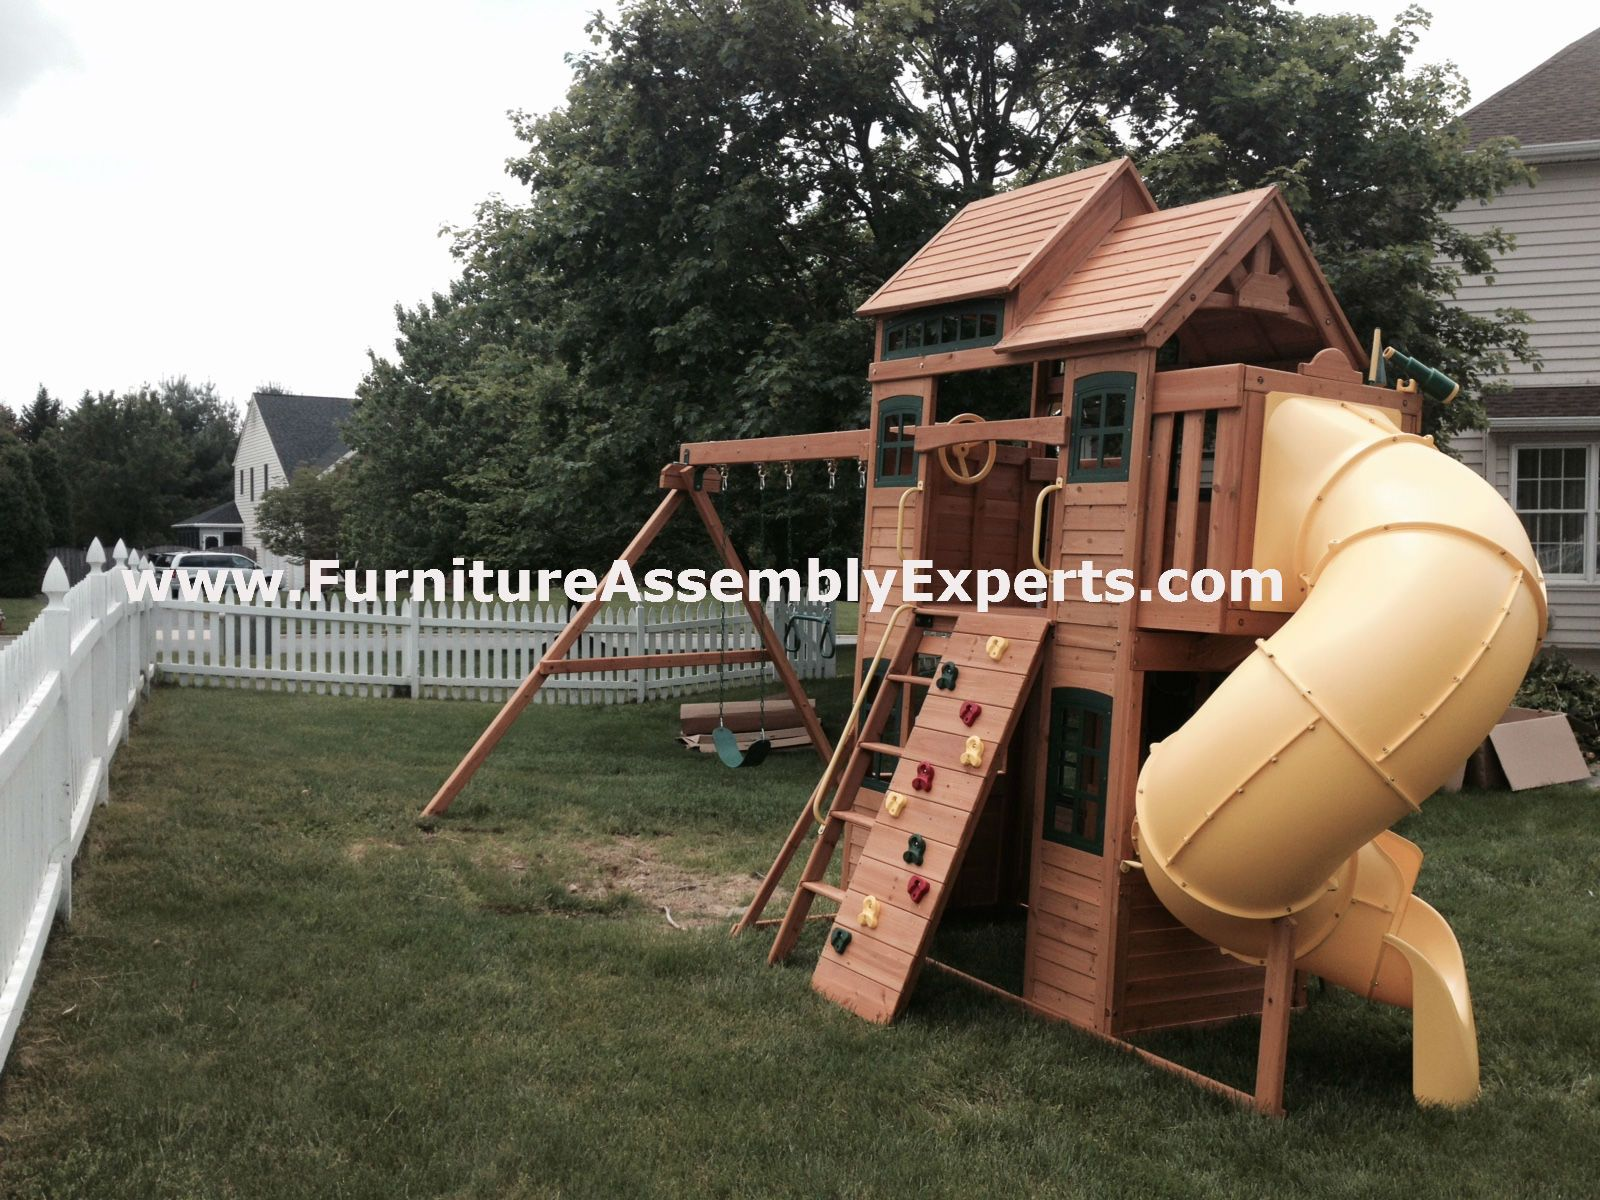 gorilla playset from toys r us assembled in vienna va by furniture